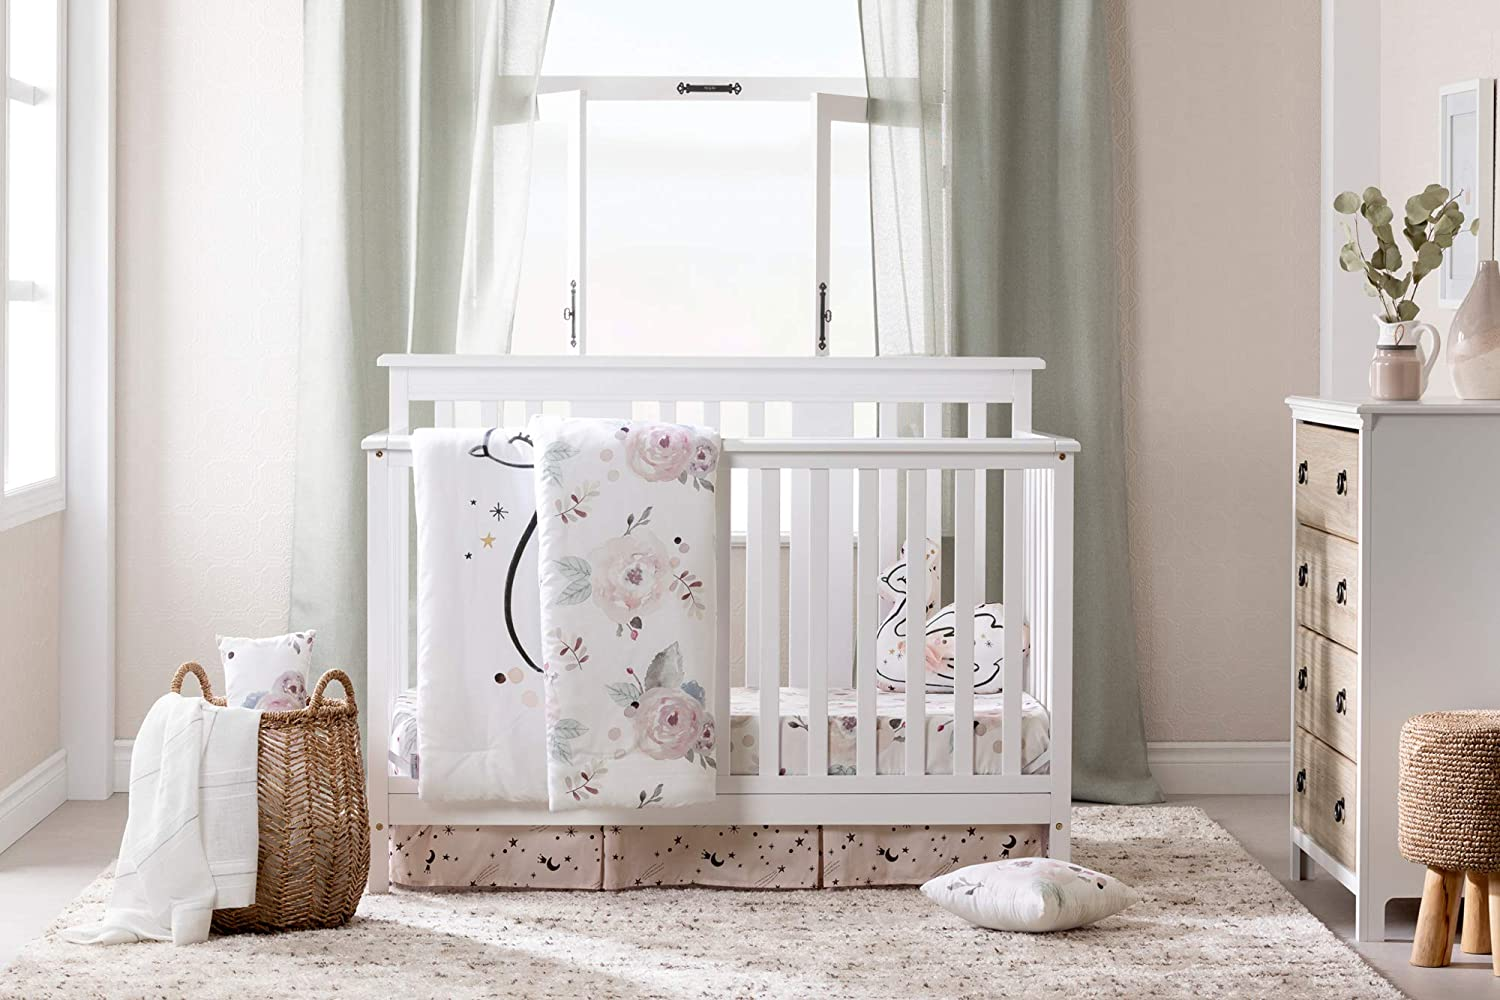 baby-bedding-set-with-swan-floral-design